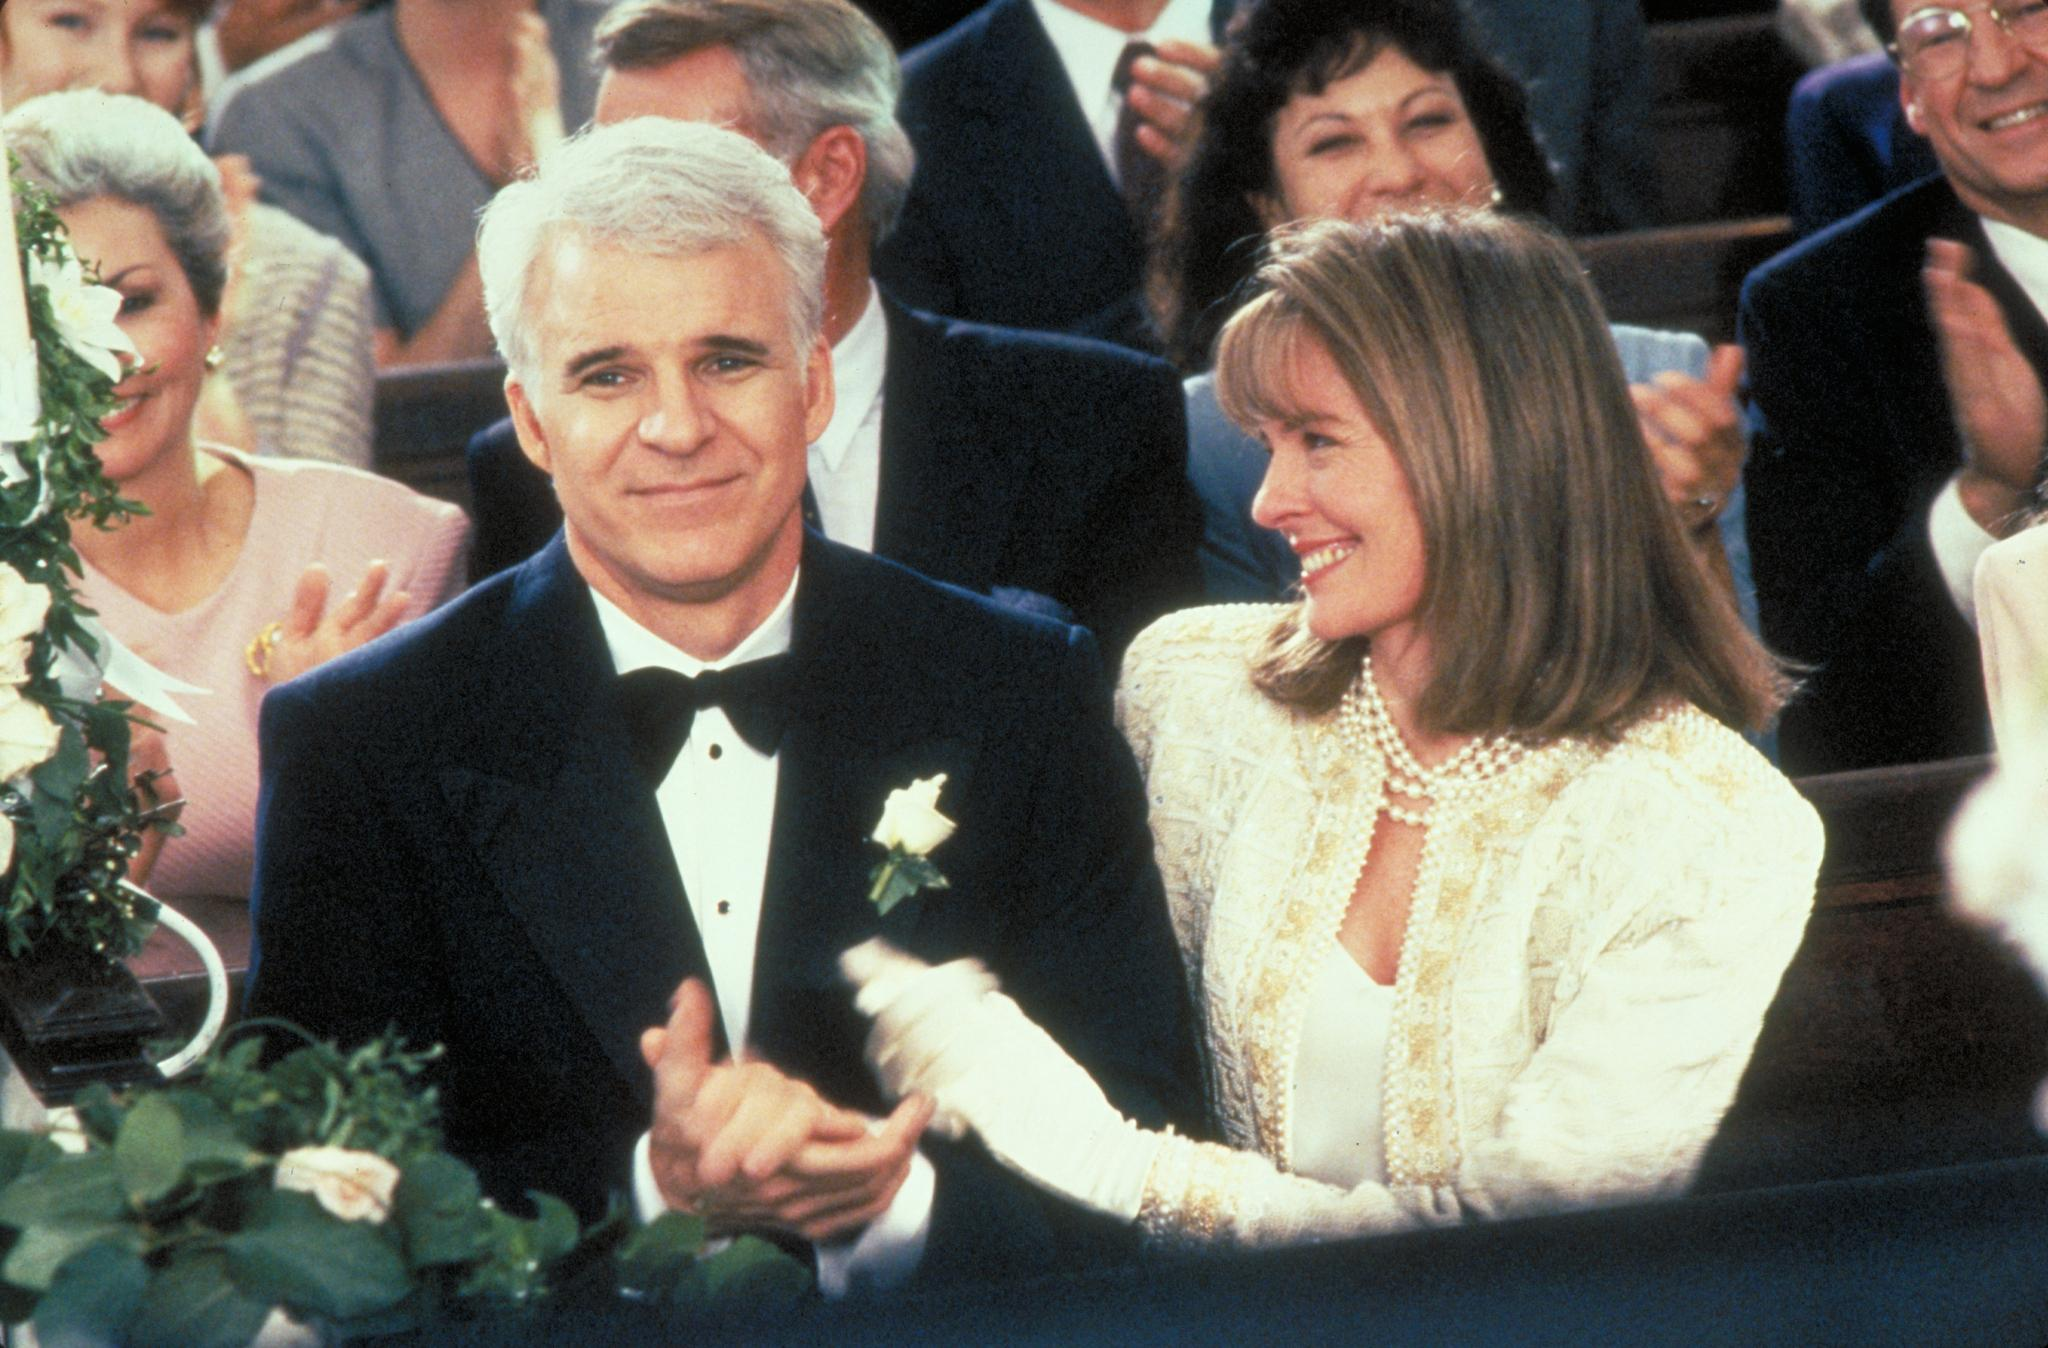 picture-of-steve-martin-and-diane-keaton-in-father-of-the-bride-large-picture.jpg